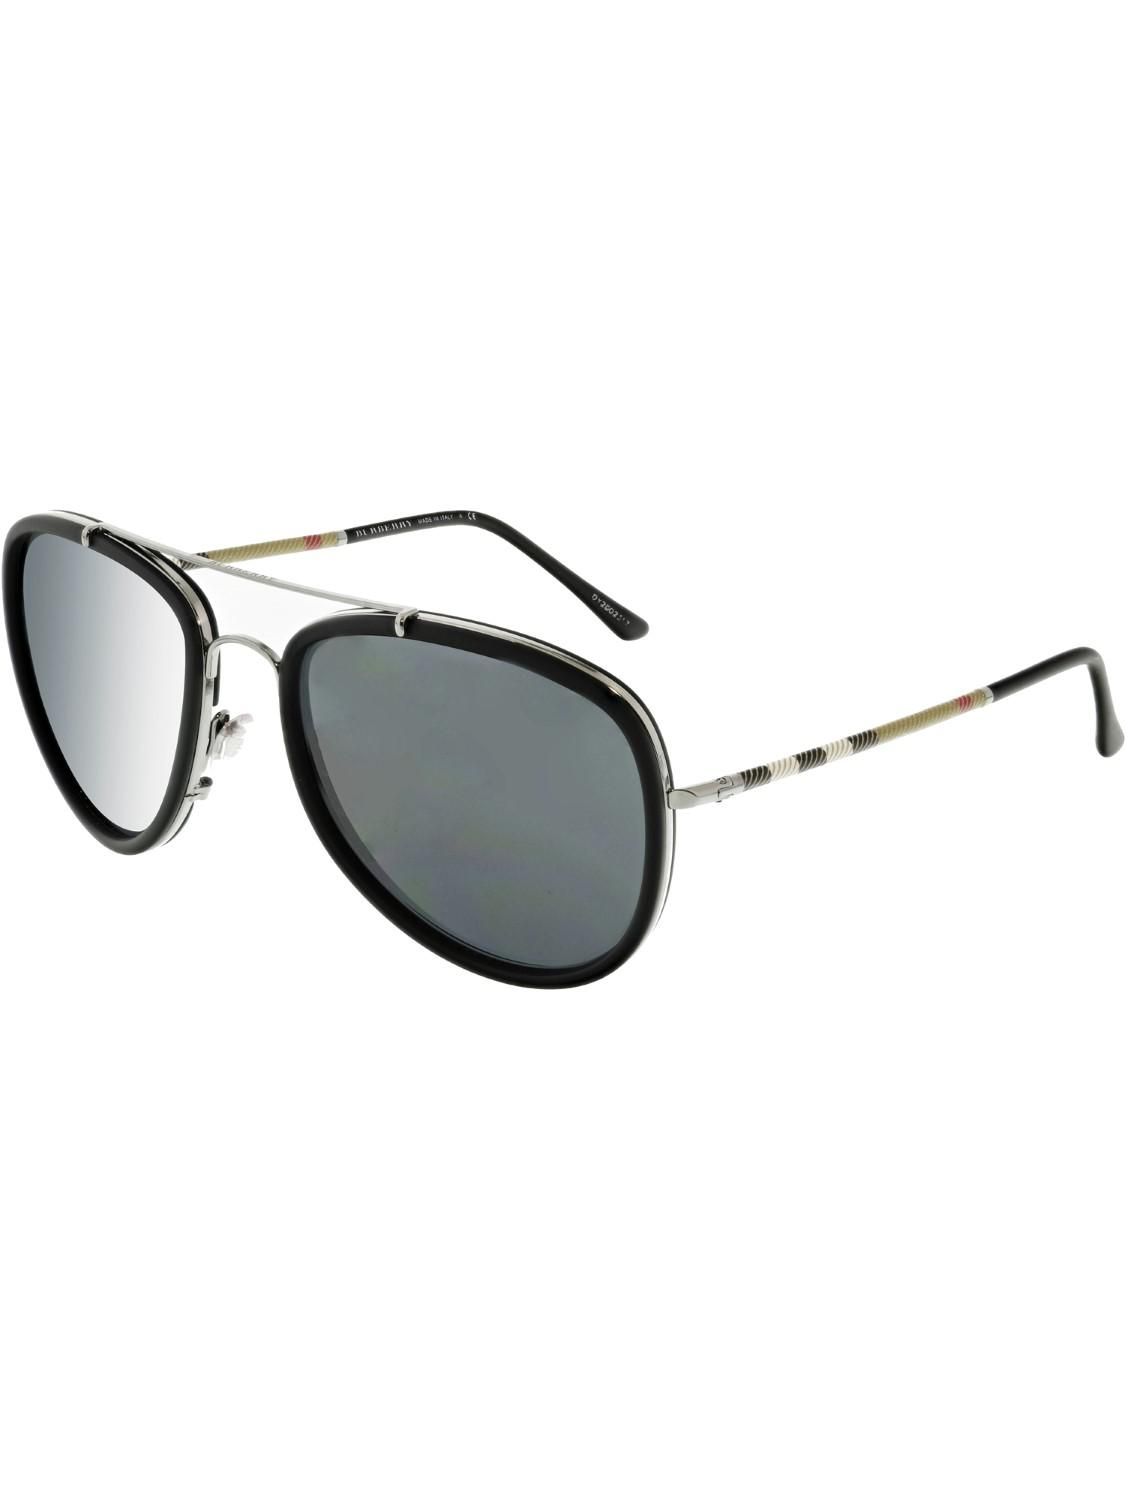 1c3330f2740c Lyst - Burberry Aviator Sunglasses in Black - Save 5%